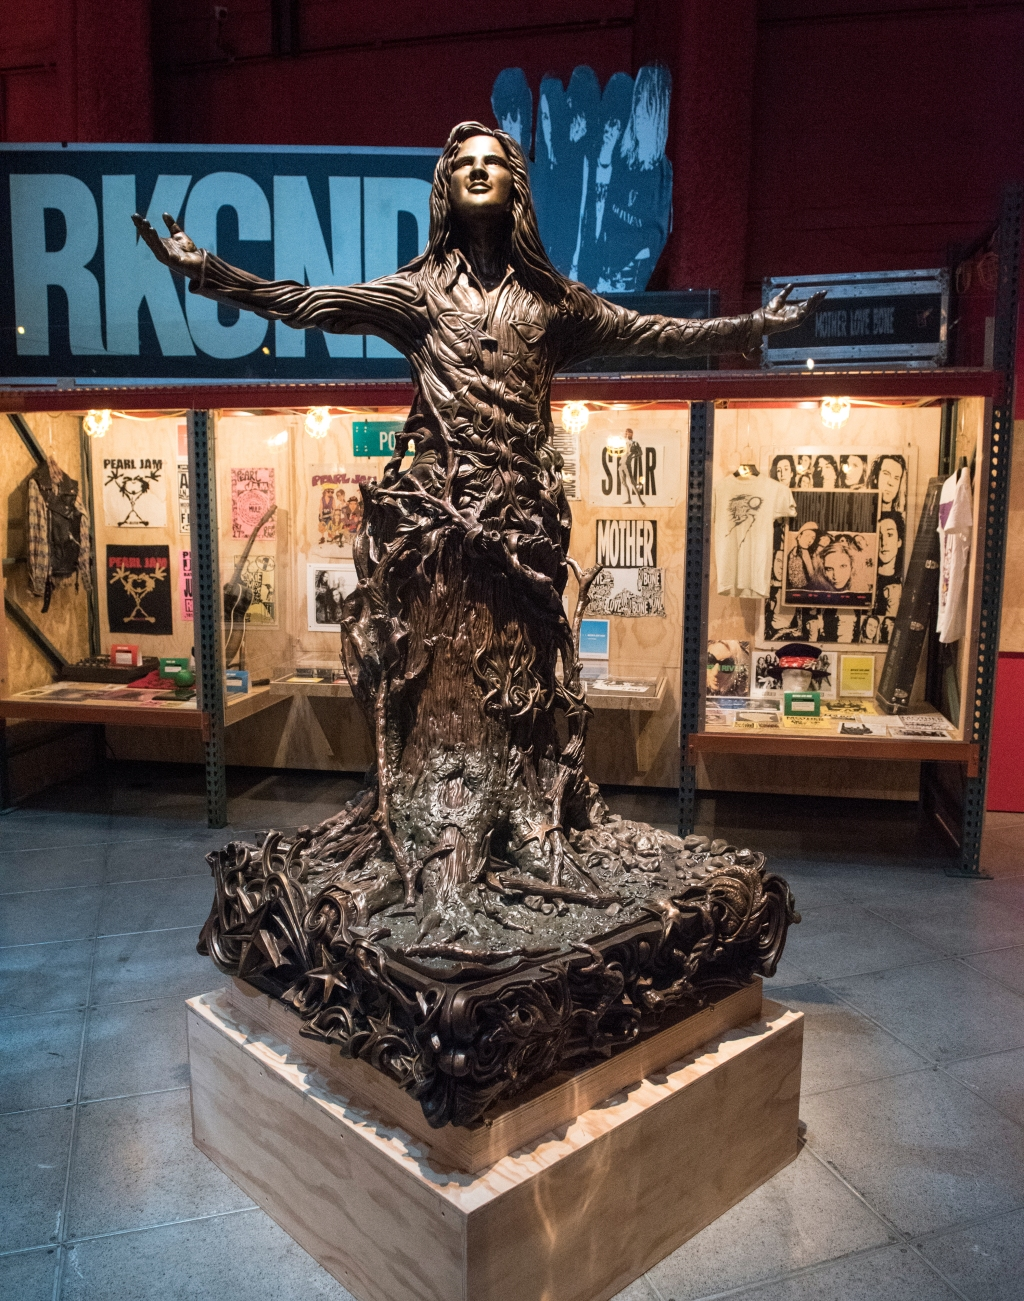 """A closer look at Woods' statue.""""Everybody liked him,"""" Ament says. """"I never heard Kurt Cobain talk about Andy, but I would guess that there would be some kinship between those two because they were both sort of from the western side of the state. Small-town peninsula life."""""""